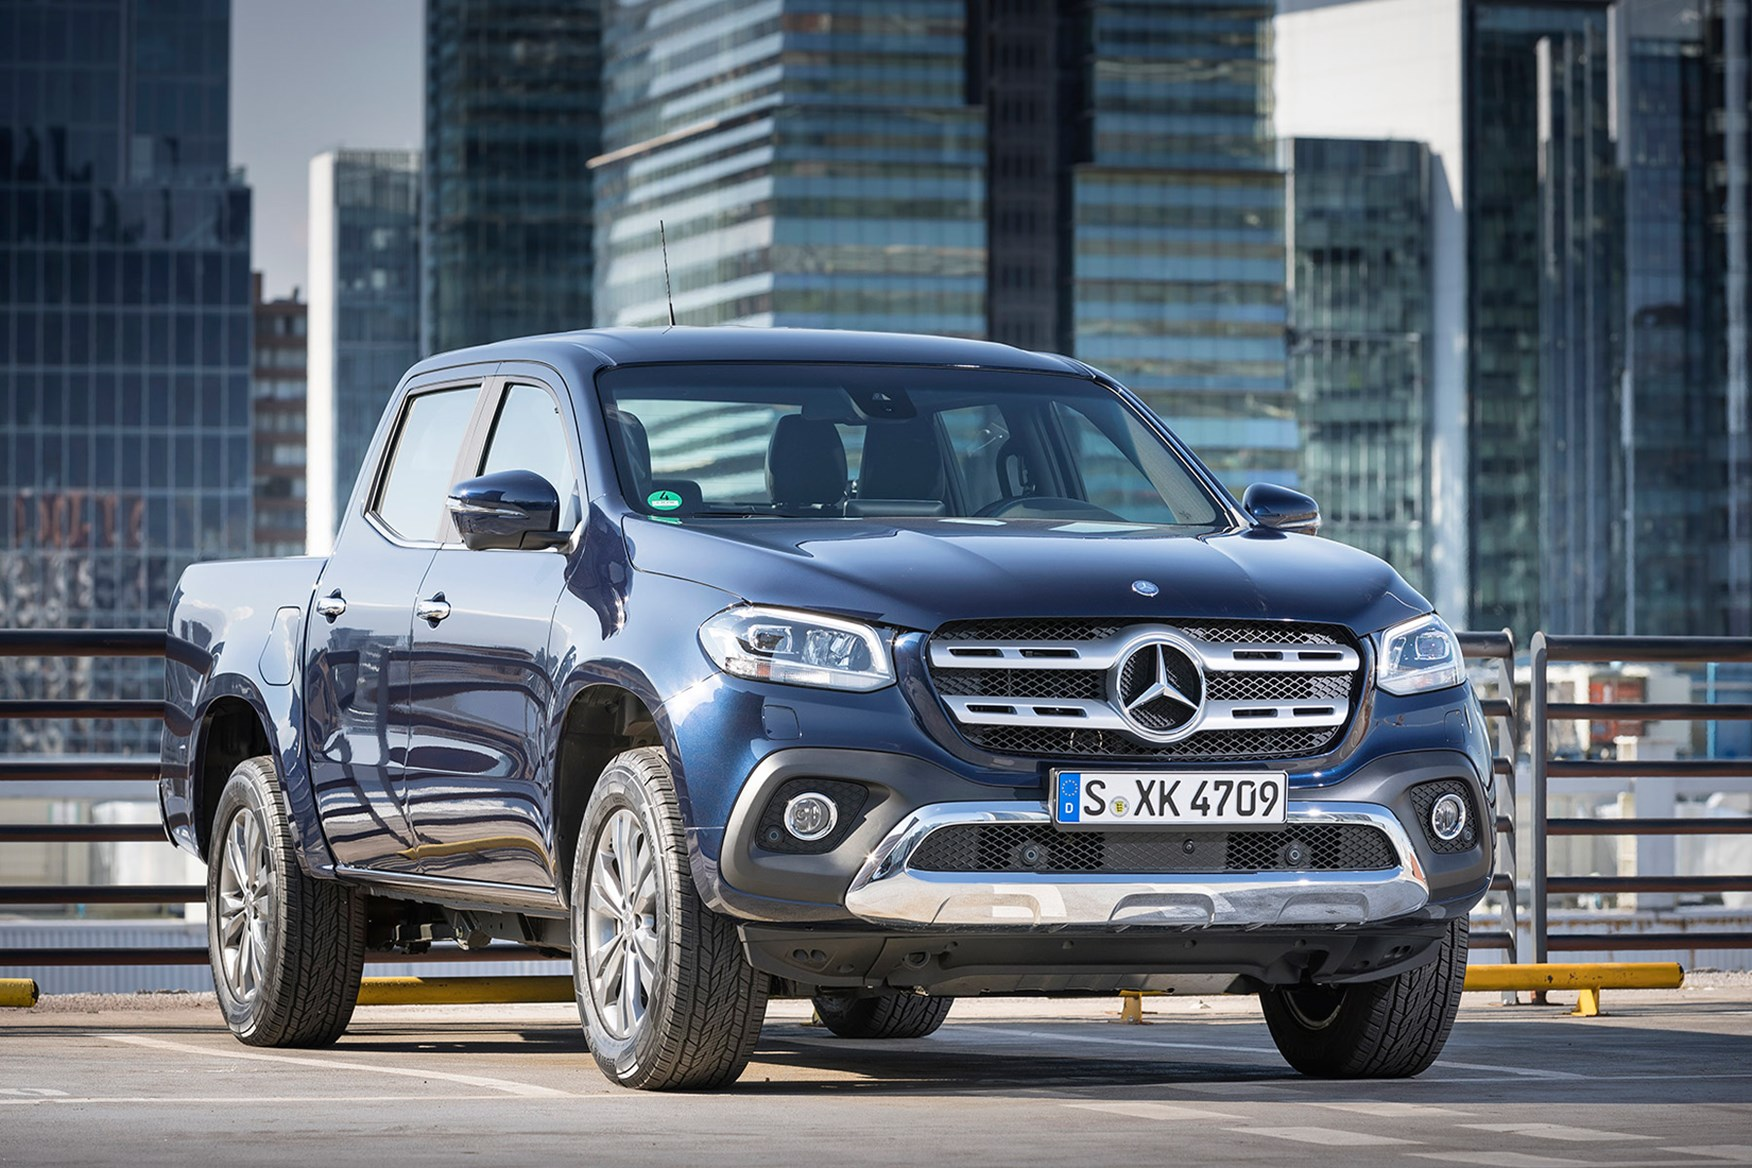 Mercedes-Benz X-Class full review on Parkers Vans - front